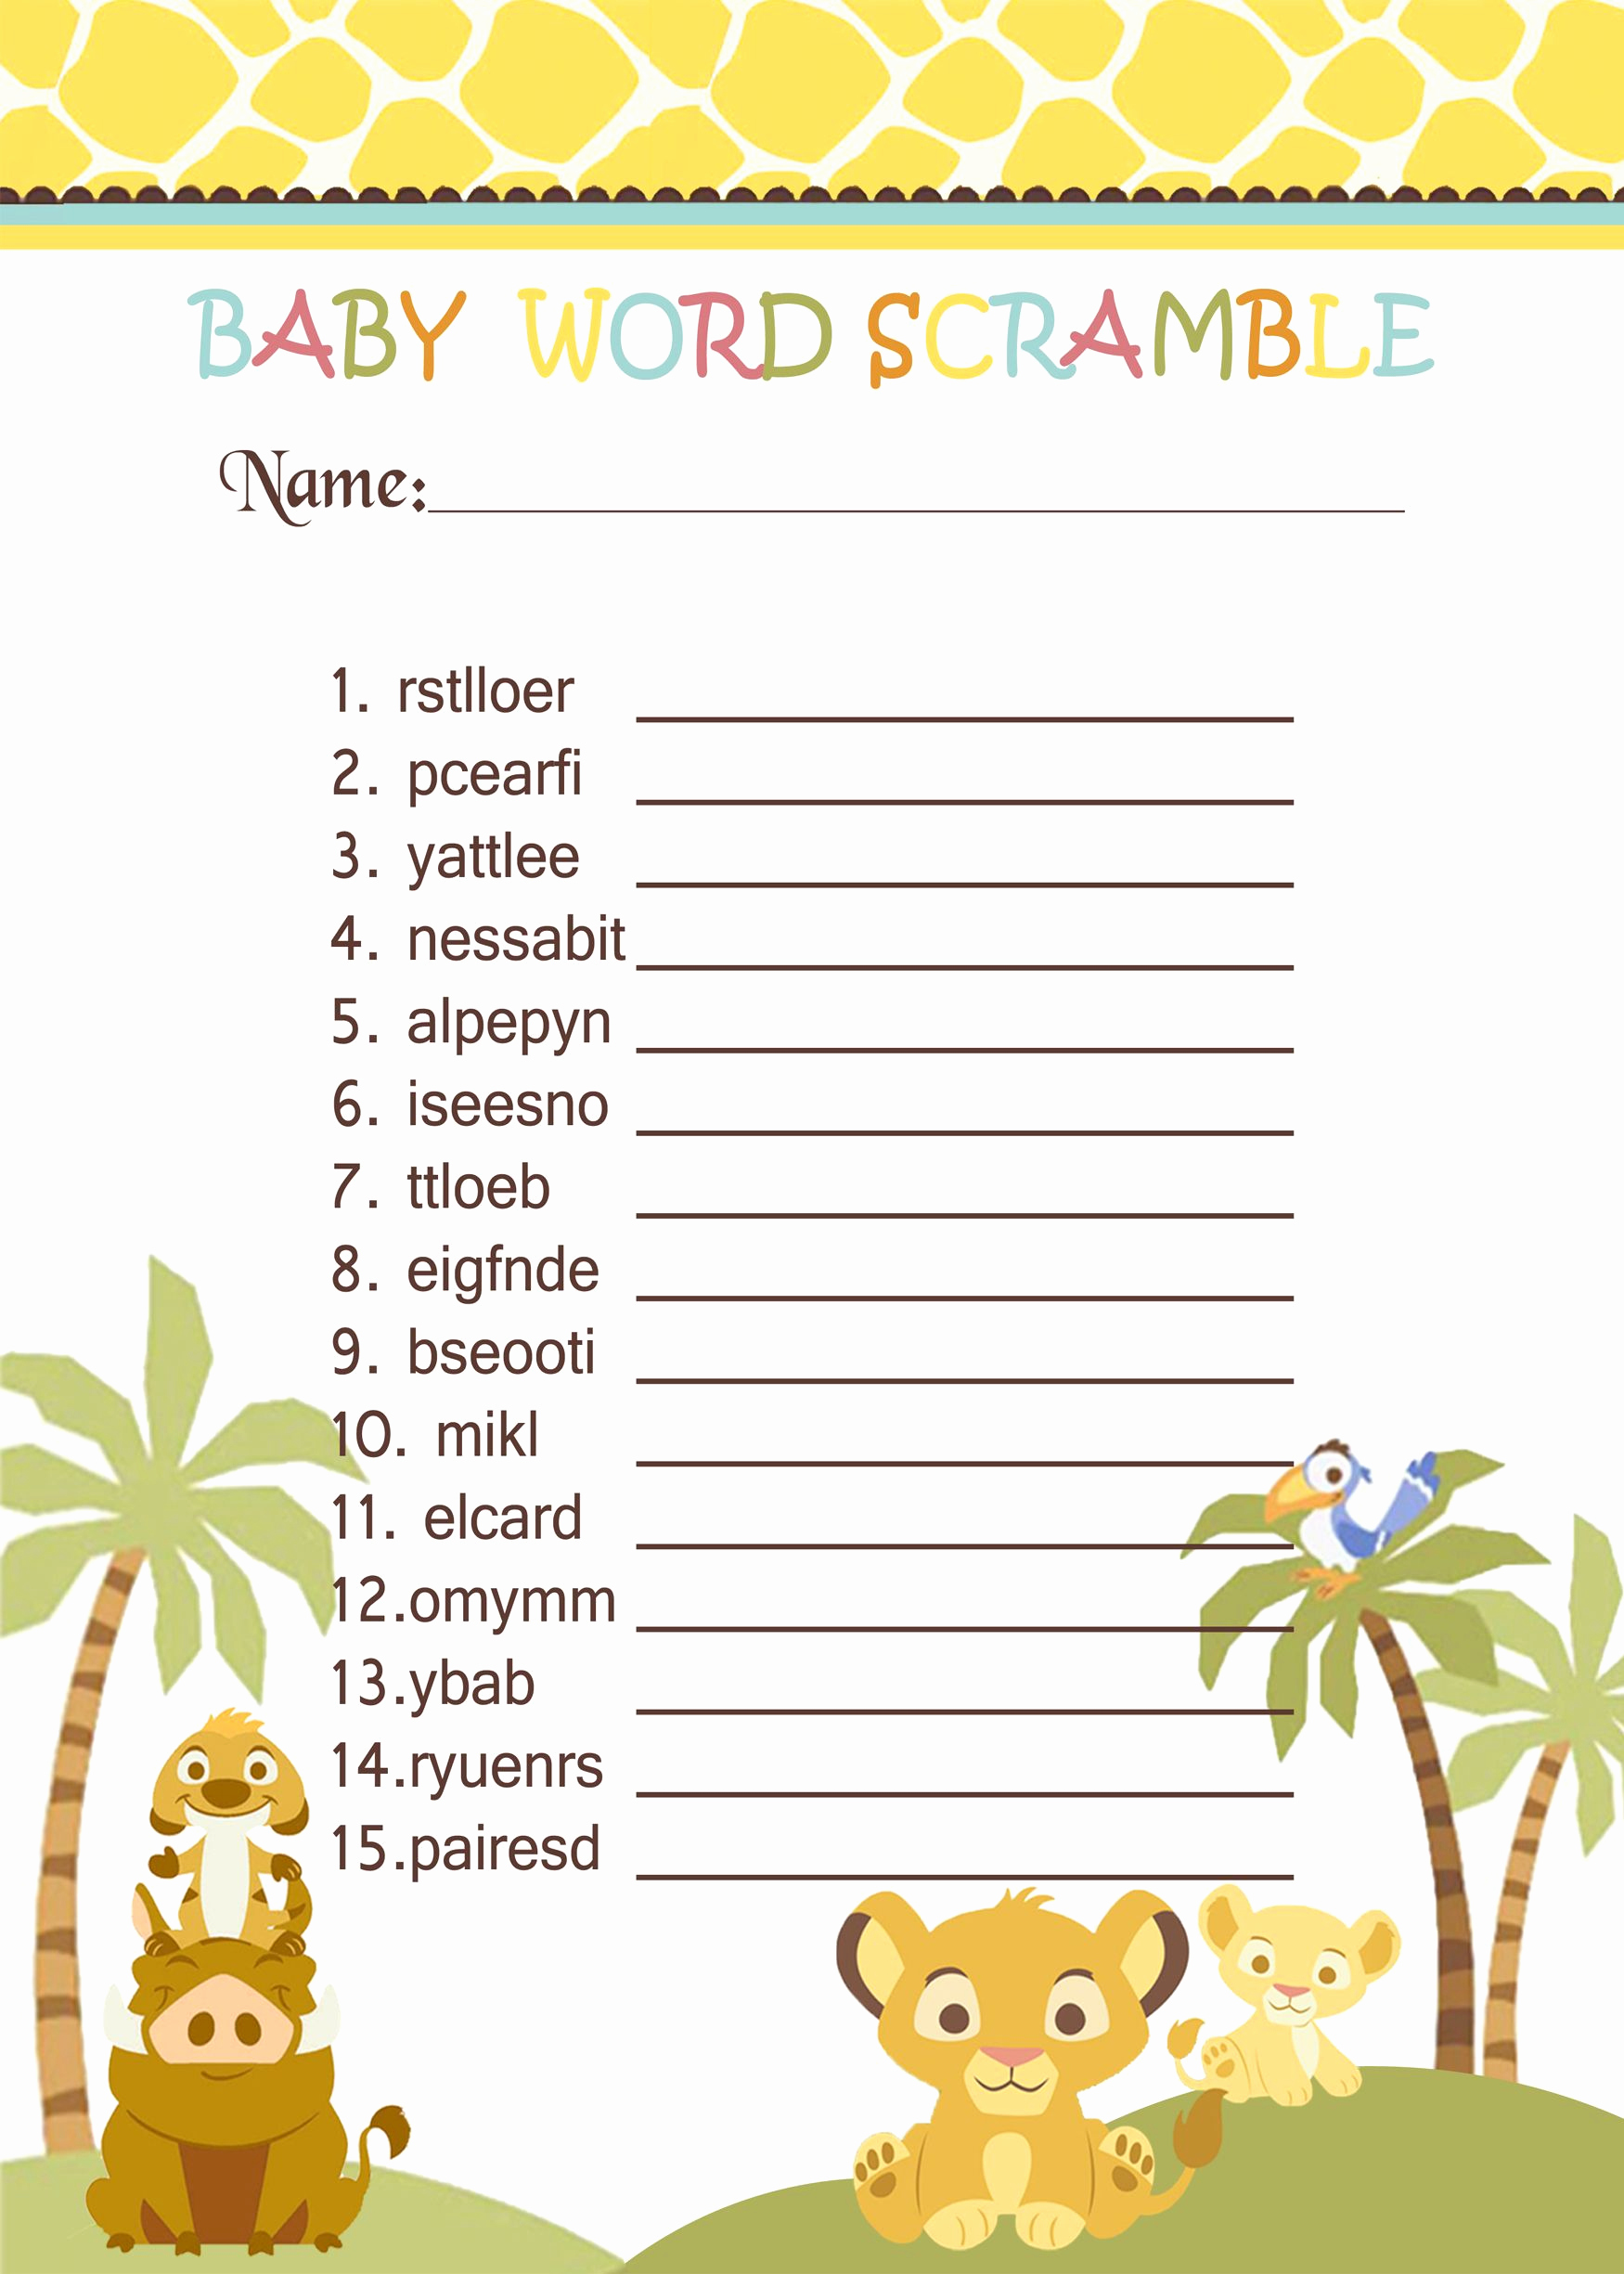 Lion King Invitation Template Unique Simba Lion King Baby Shower Games Word Scramble $3 99